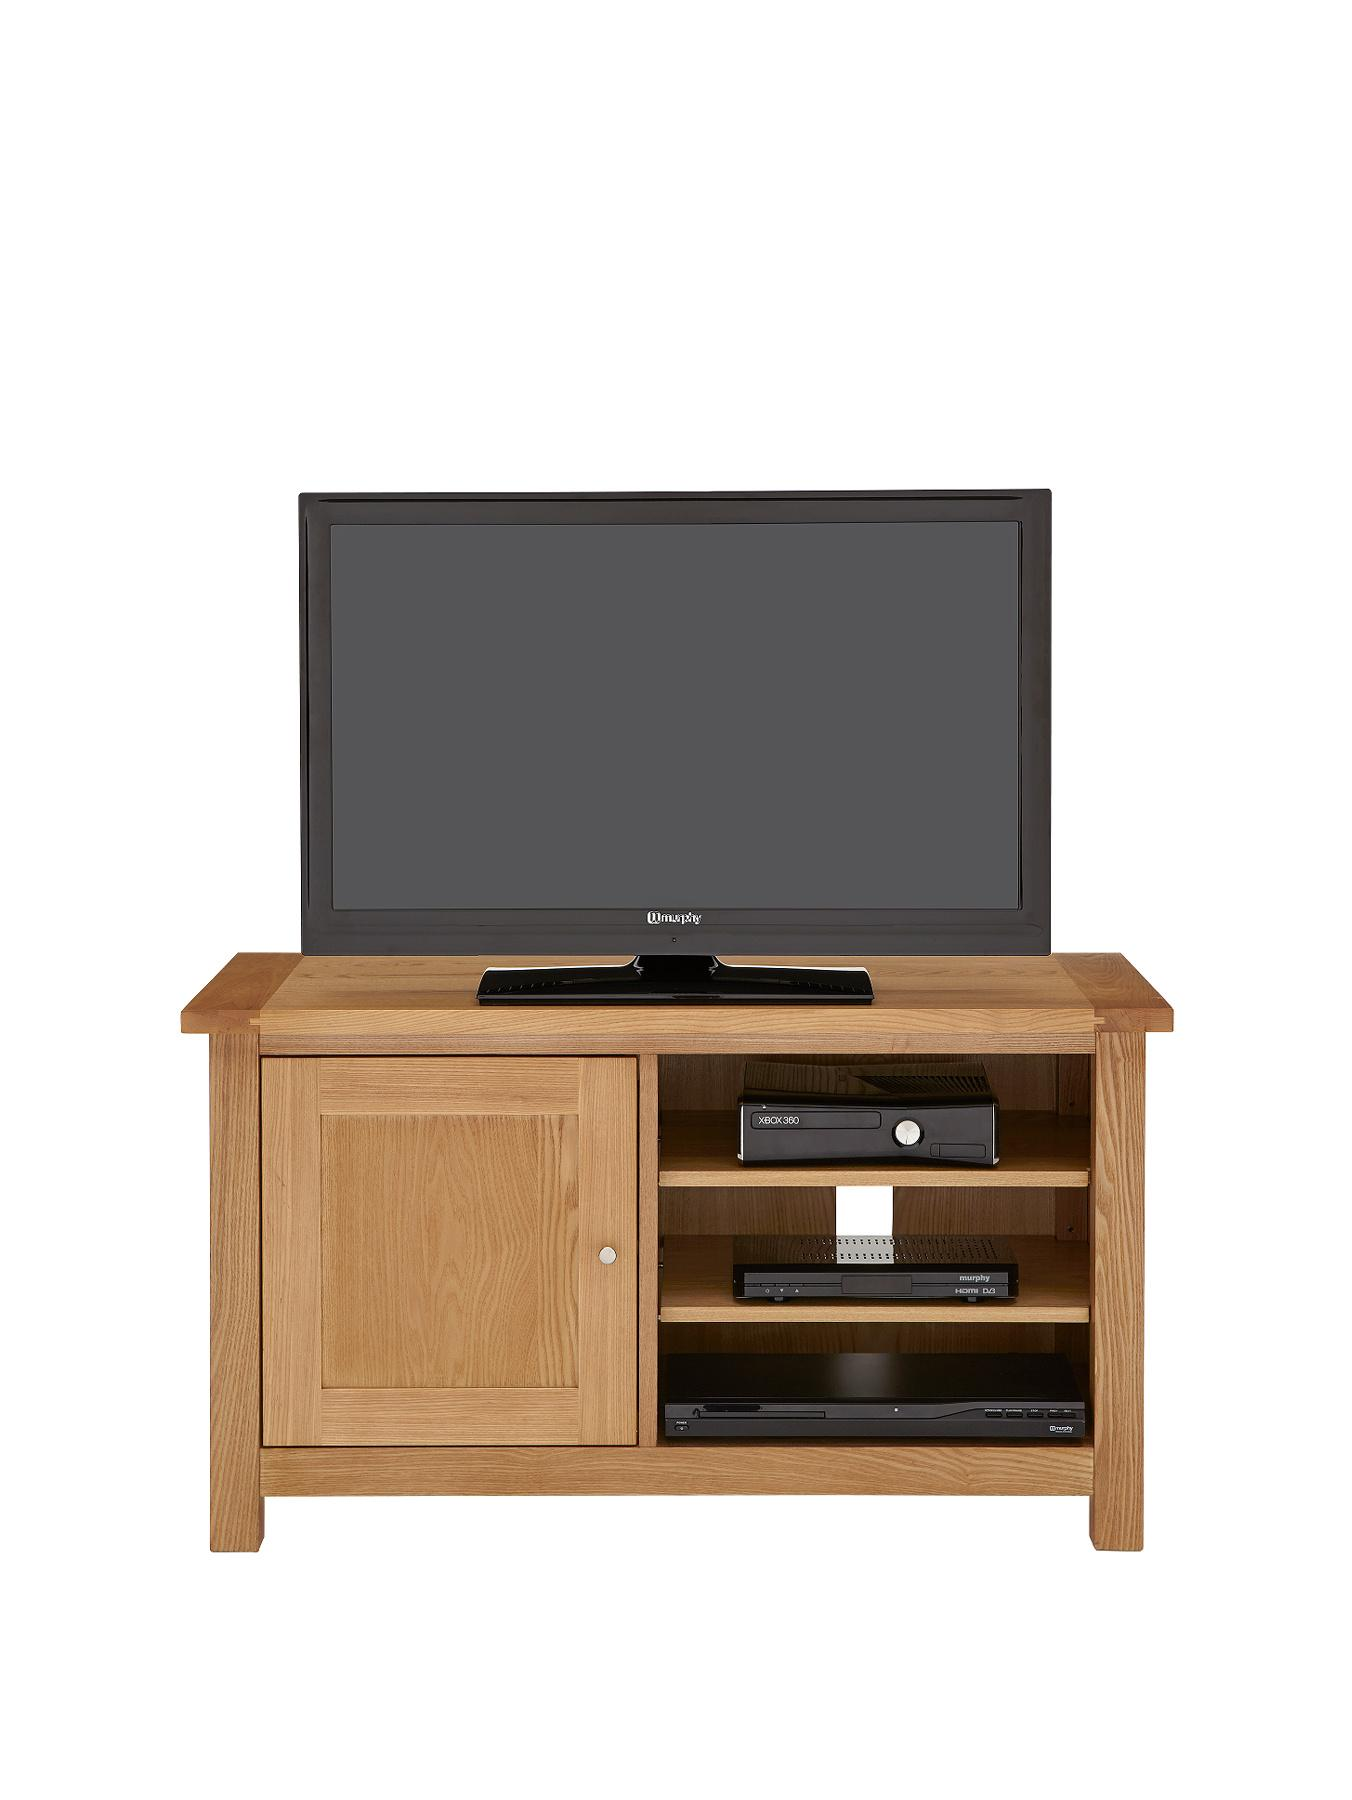 Chesterfield TV Unit - fits up to 42 inch TV